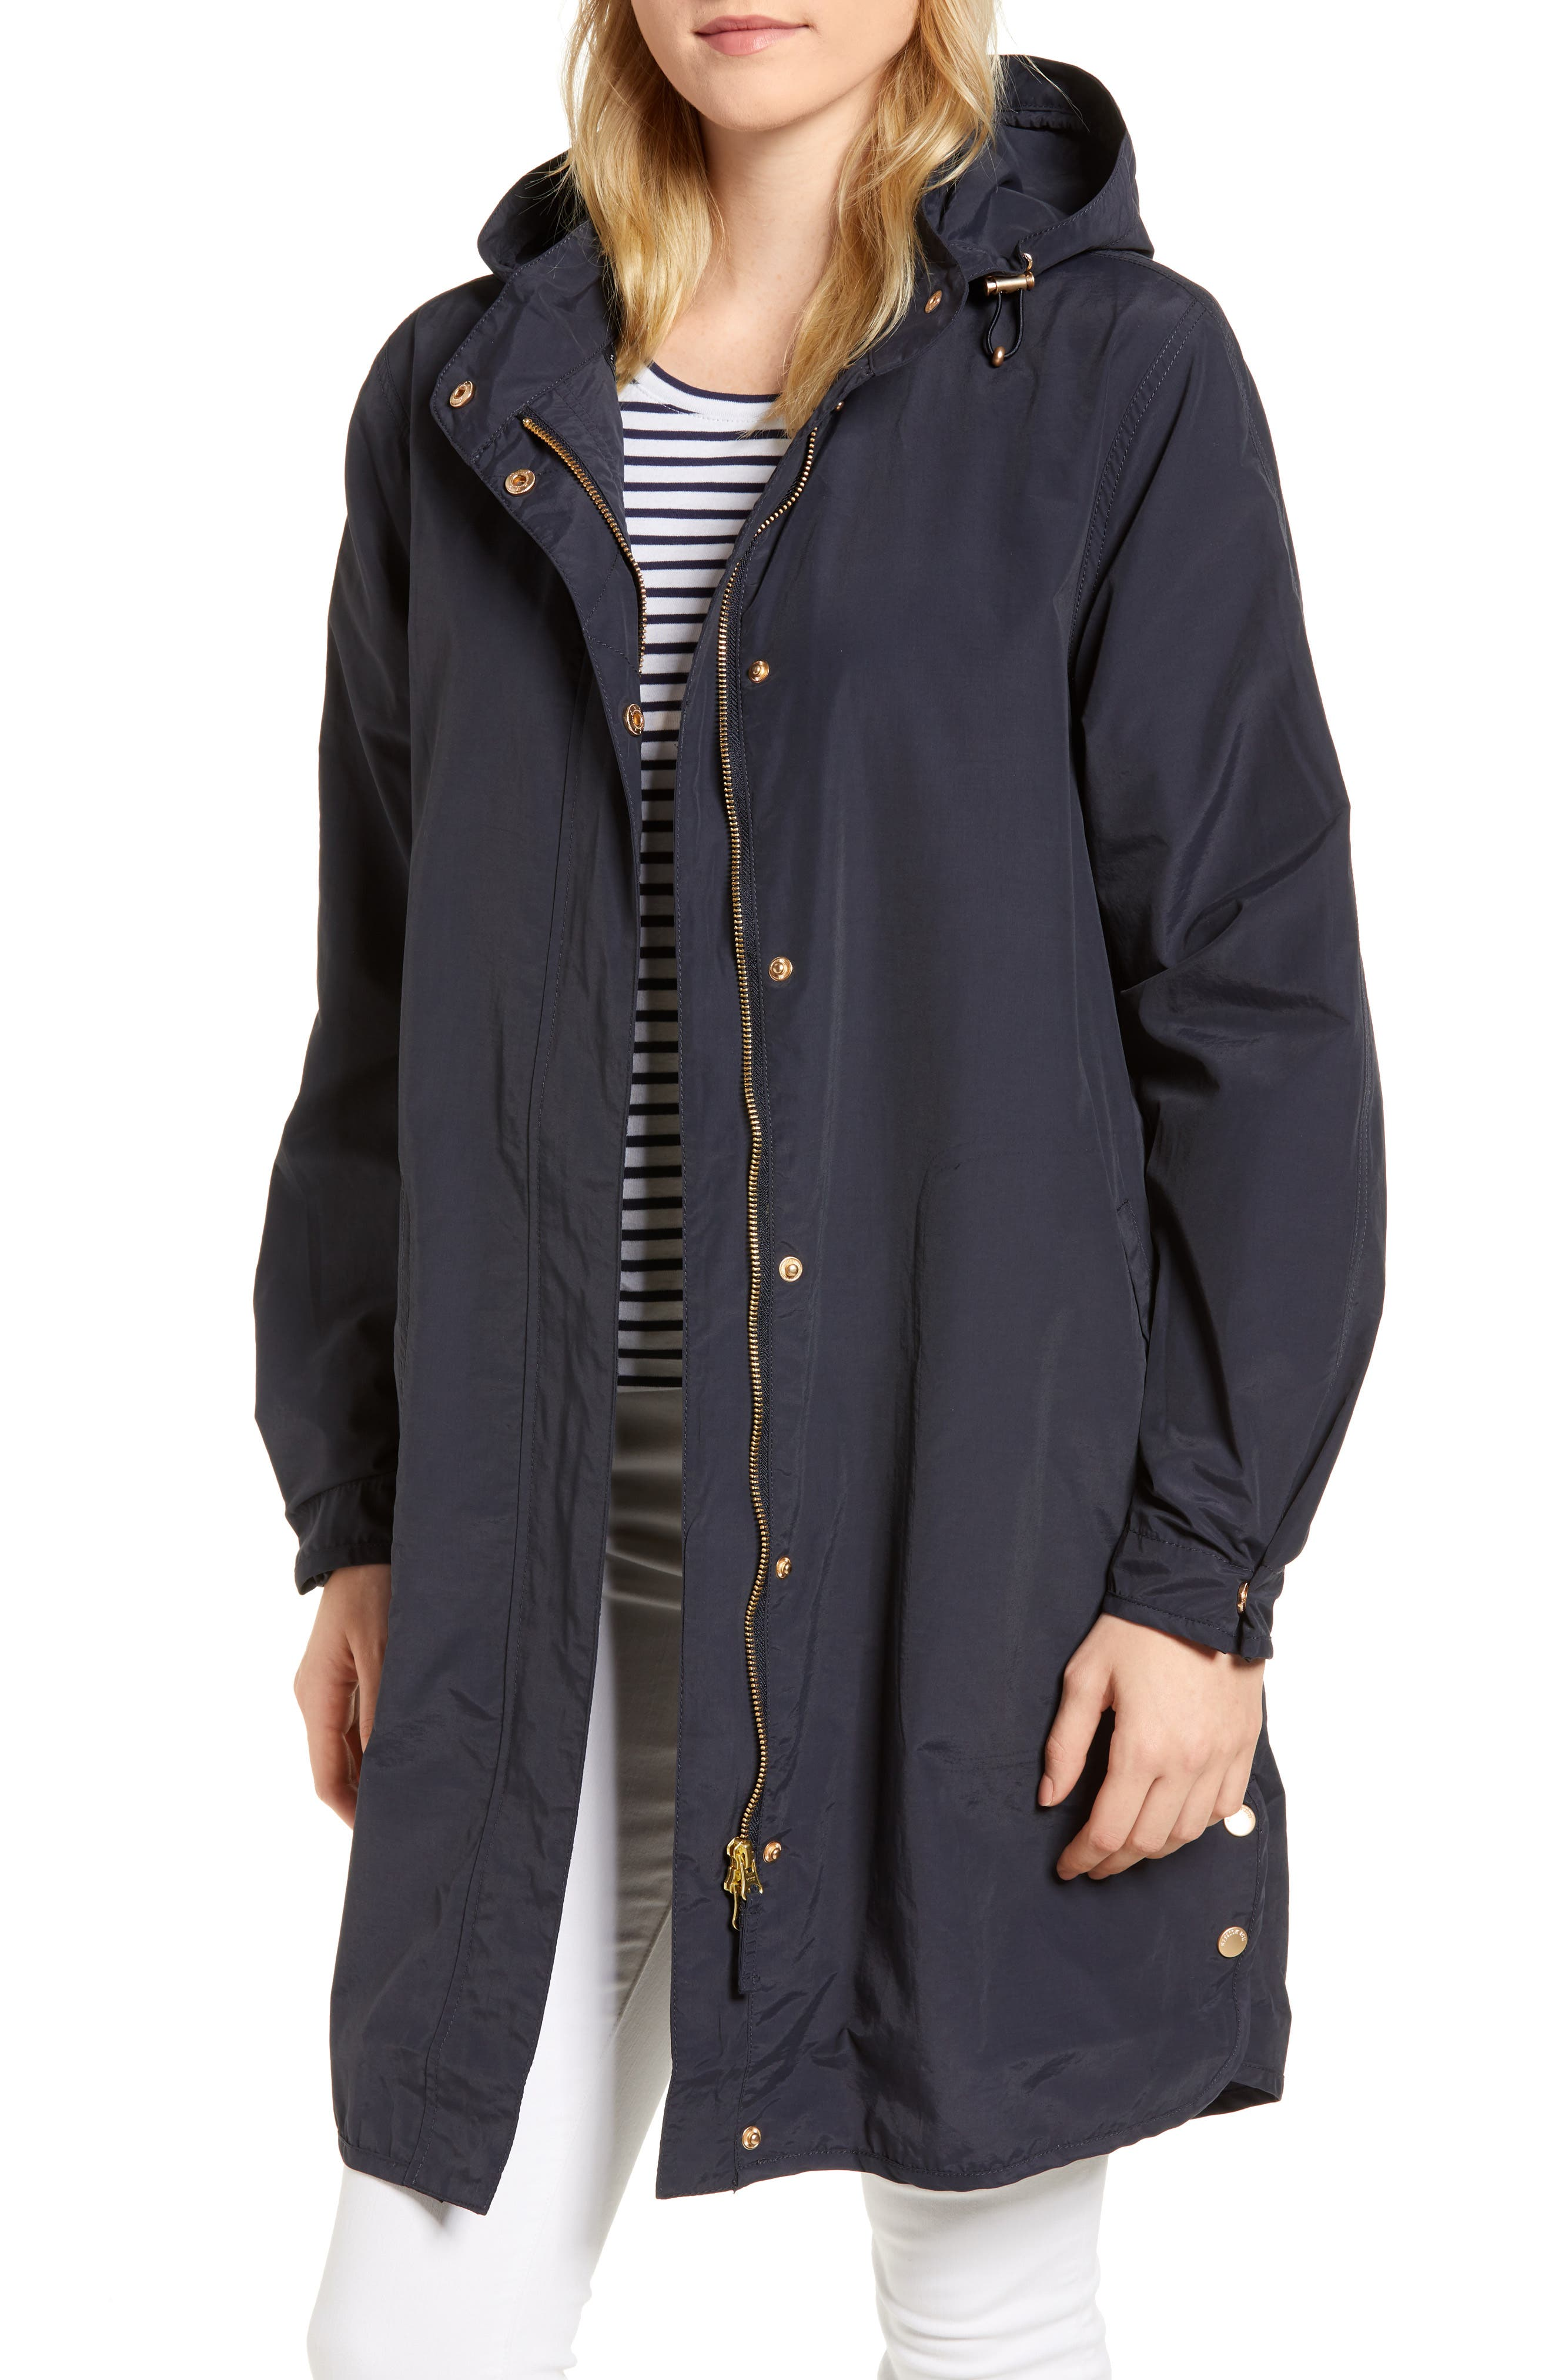 Ilse Jacobsen Packable Wind & Rain Coat